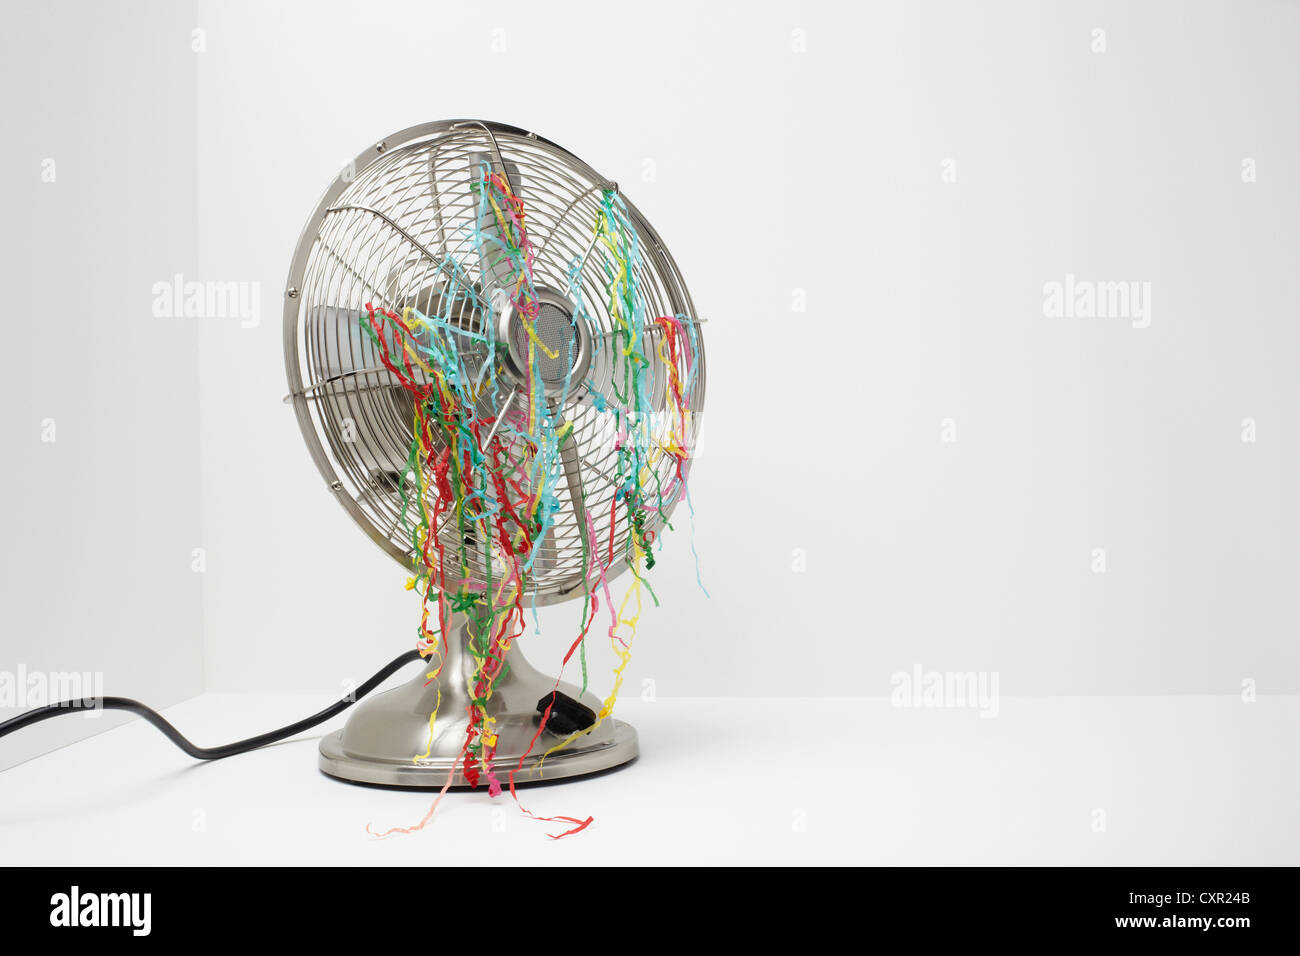 Electric fan with streamers - Stock Image